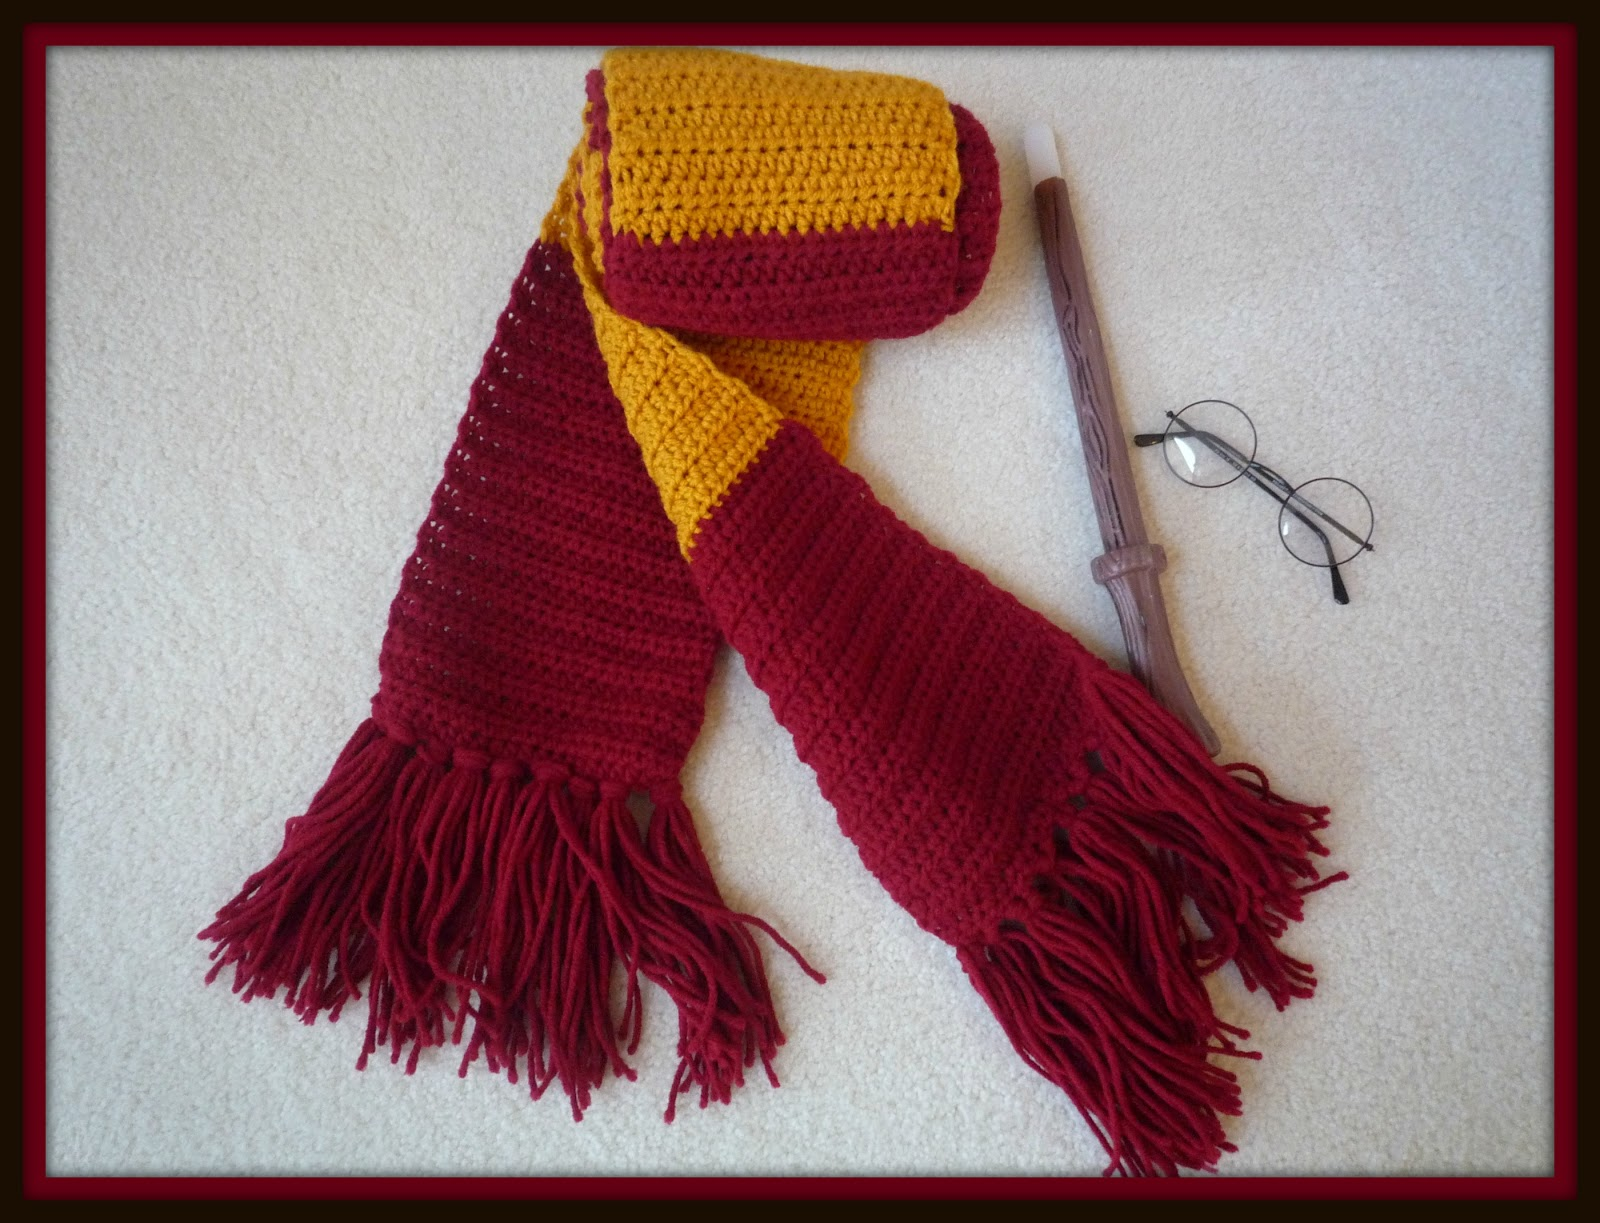 The Kansas Hooker: A Better Harry Potter scarf